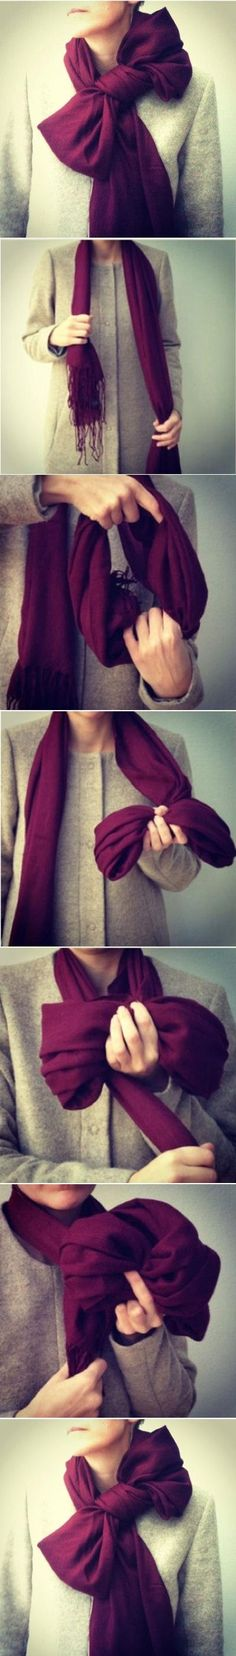 Making a scarf bow is great and you can really make this by using patience and making some time. You may need about 10 minutes to make this bow and then you can.